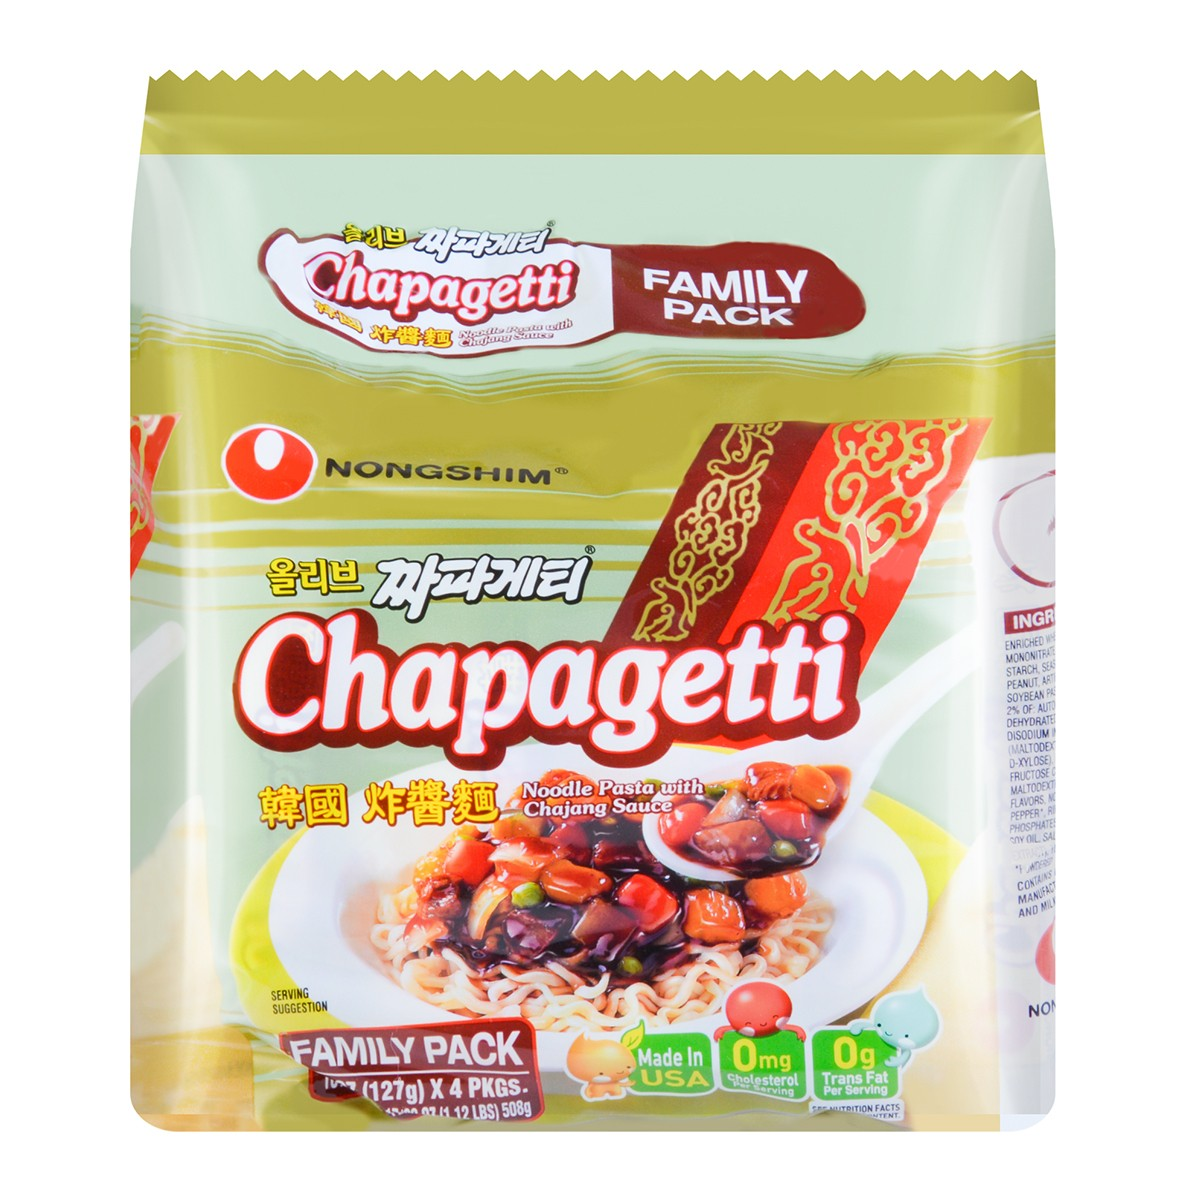 NONGSHIM Chapagetti Family Pack 4packs